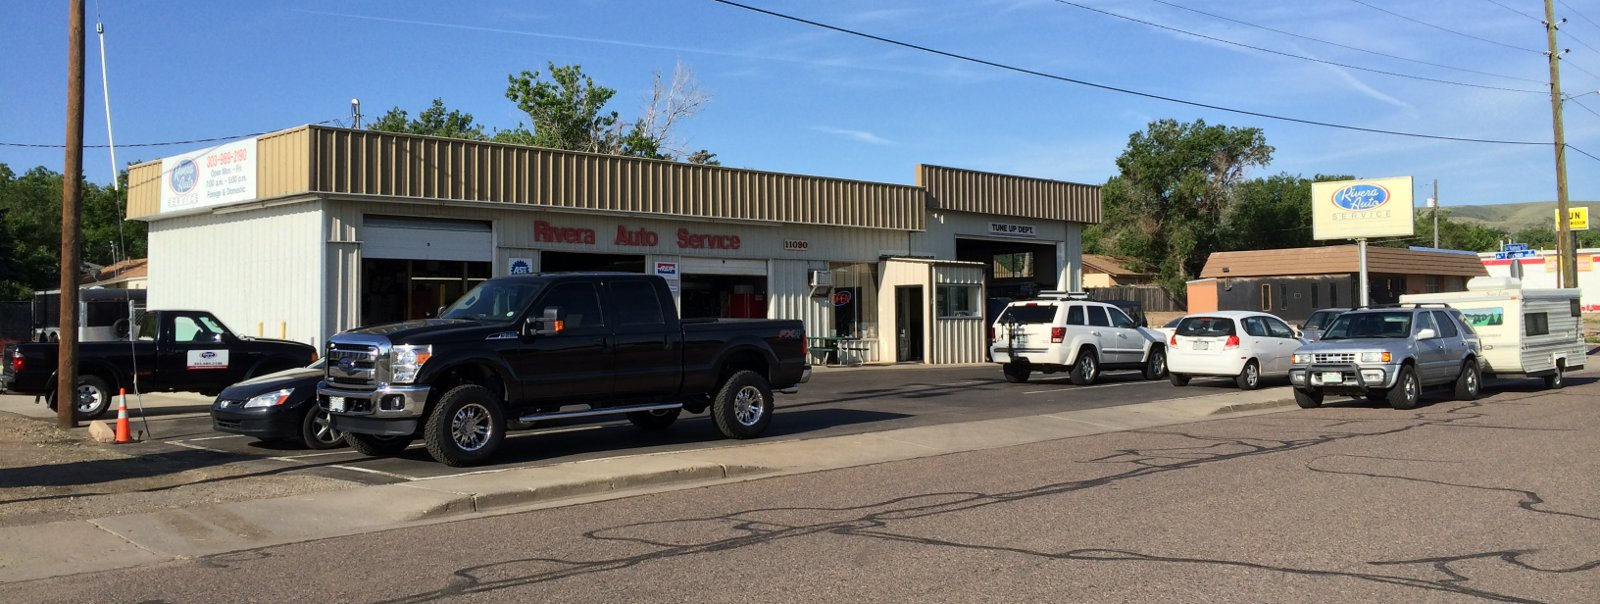 Rivera Auto Service located at 11090 West Alameda Ave. Lakewood, CO 80226 between Kipling and Union